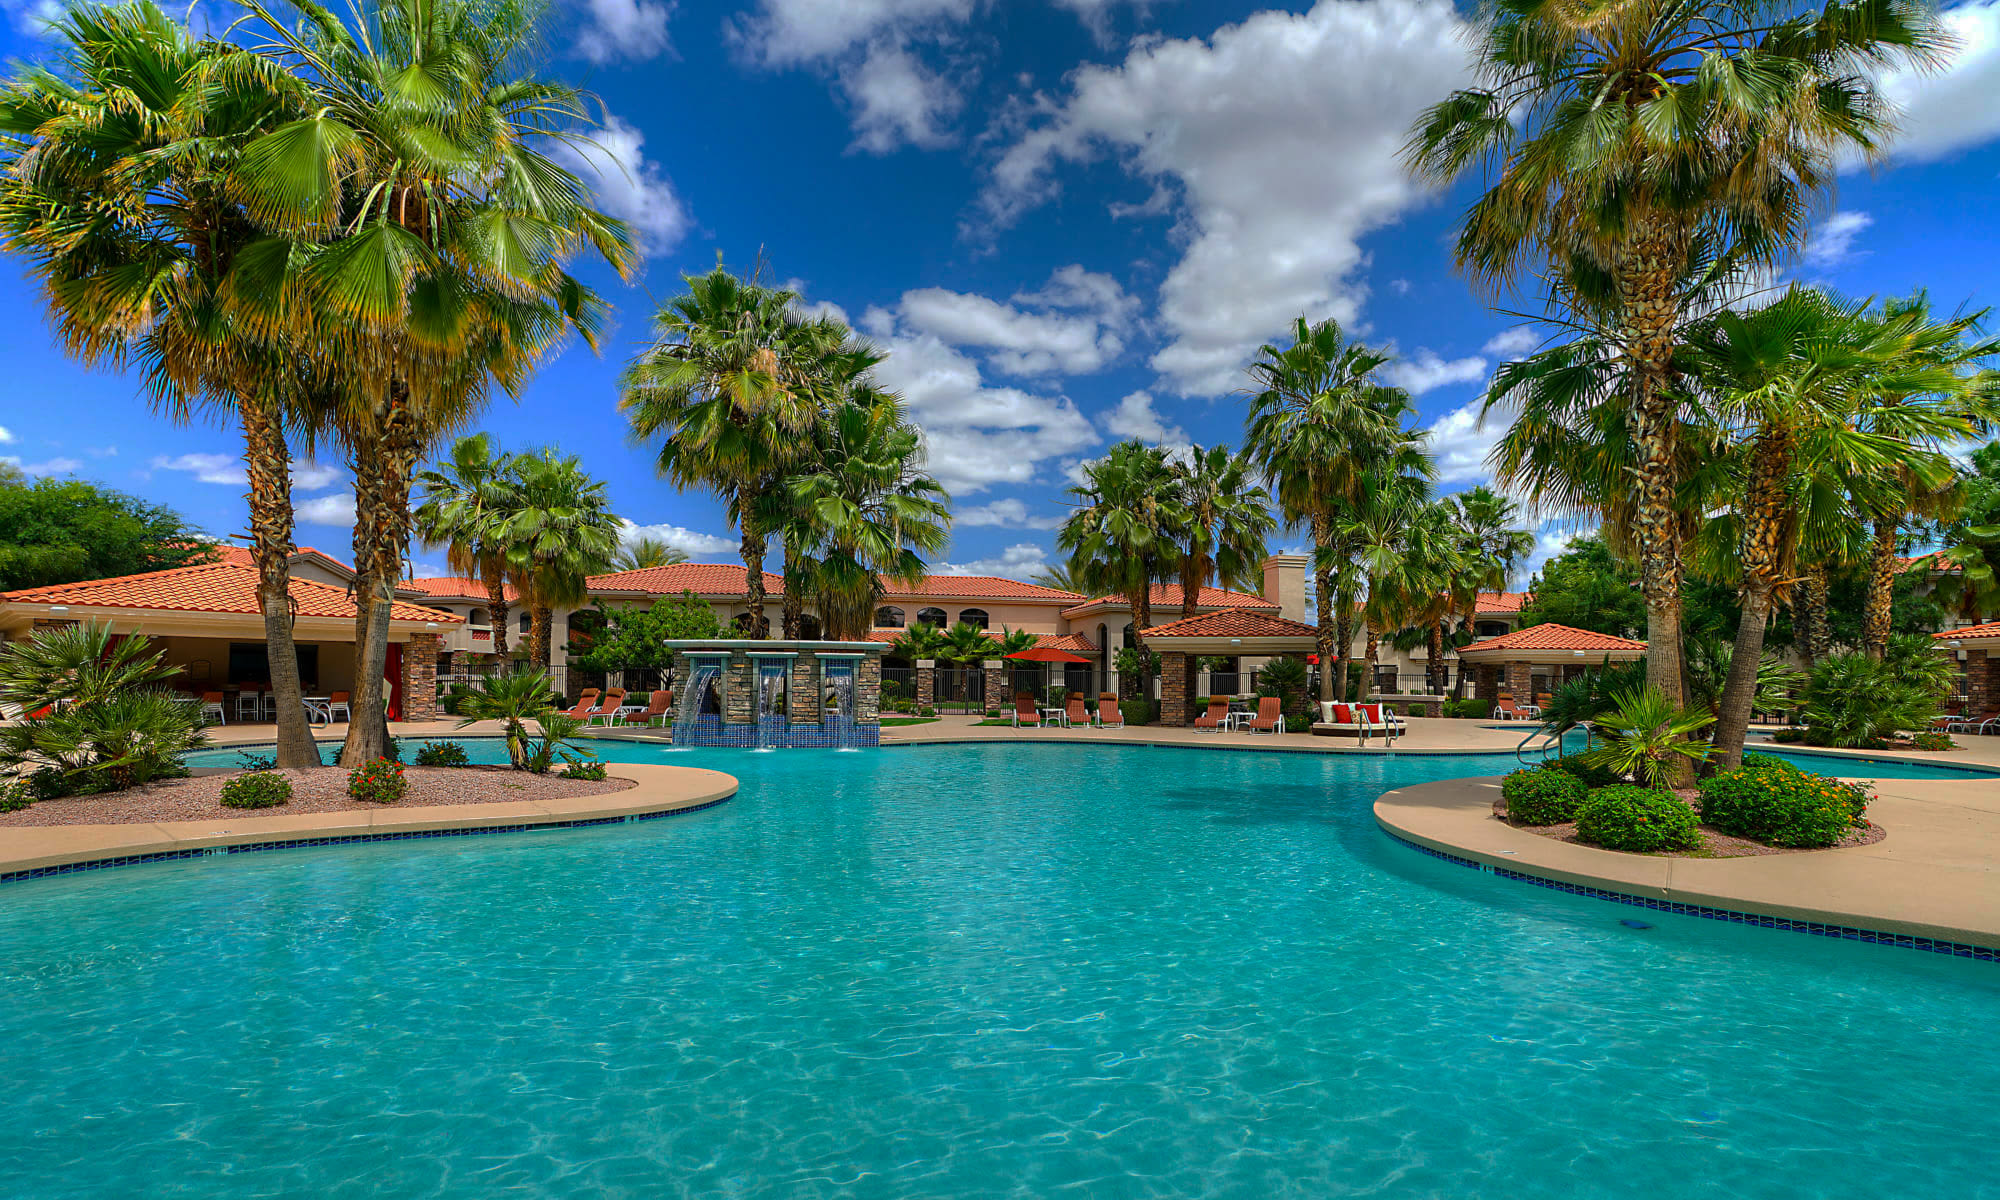 Apartments at San Palacio in Chandler, Arizona